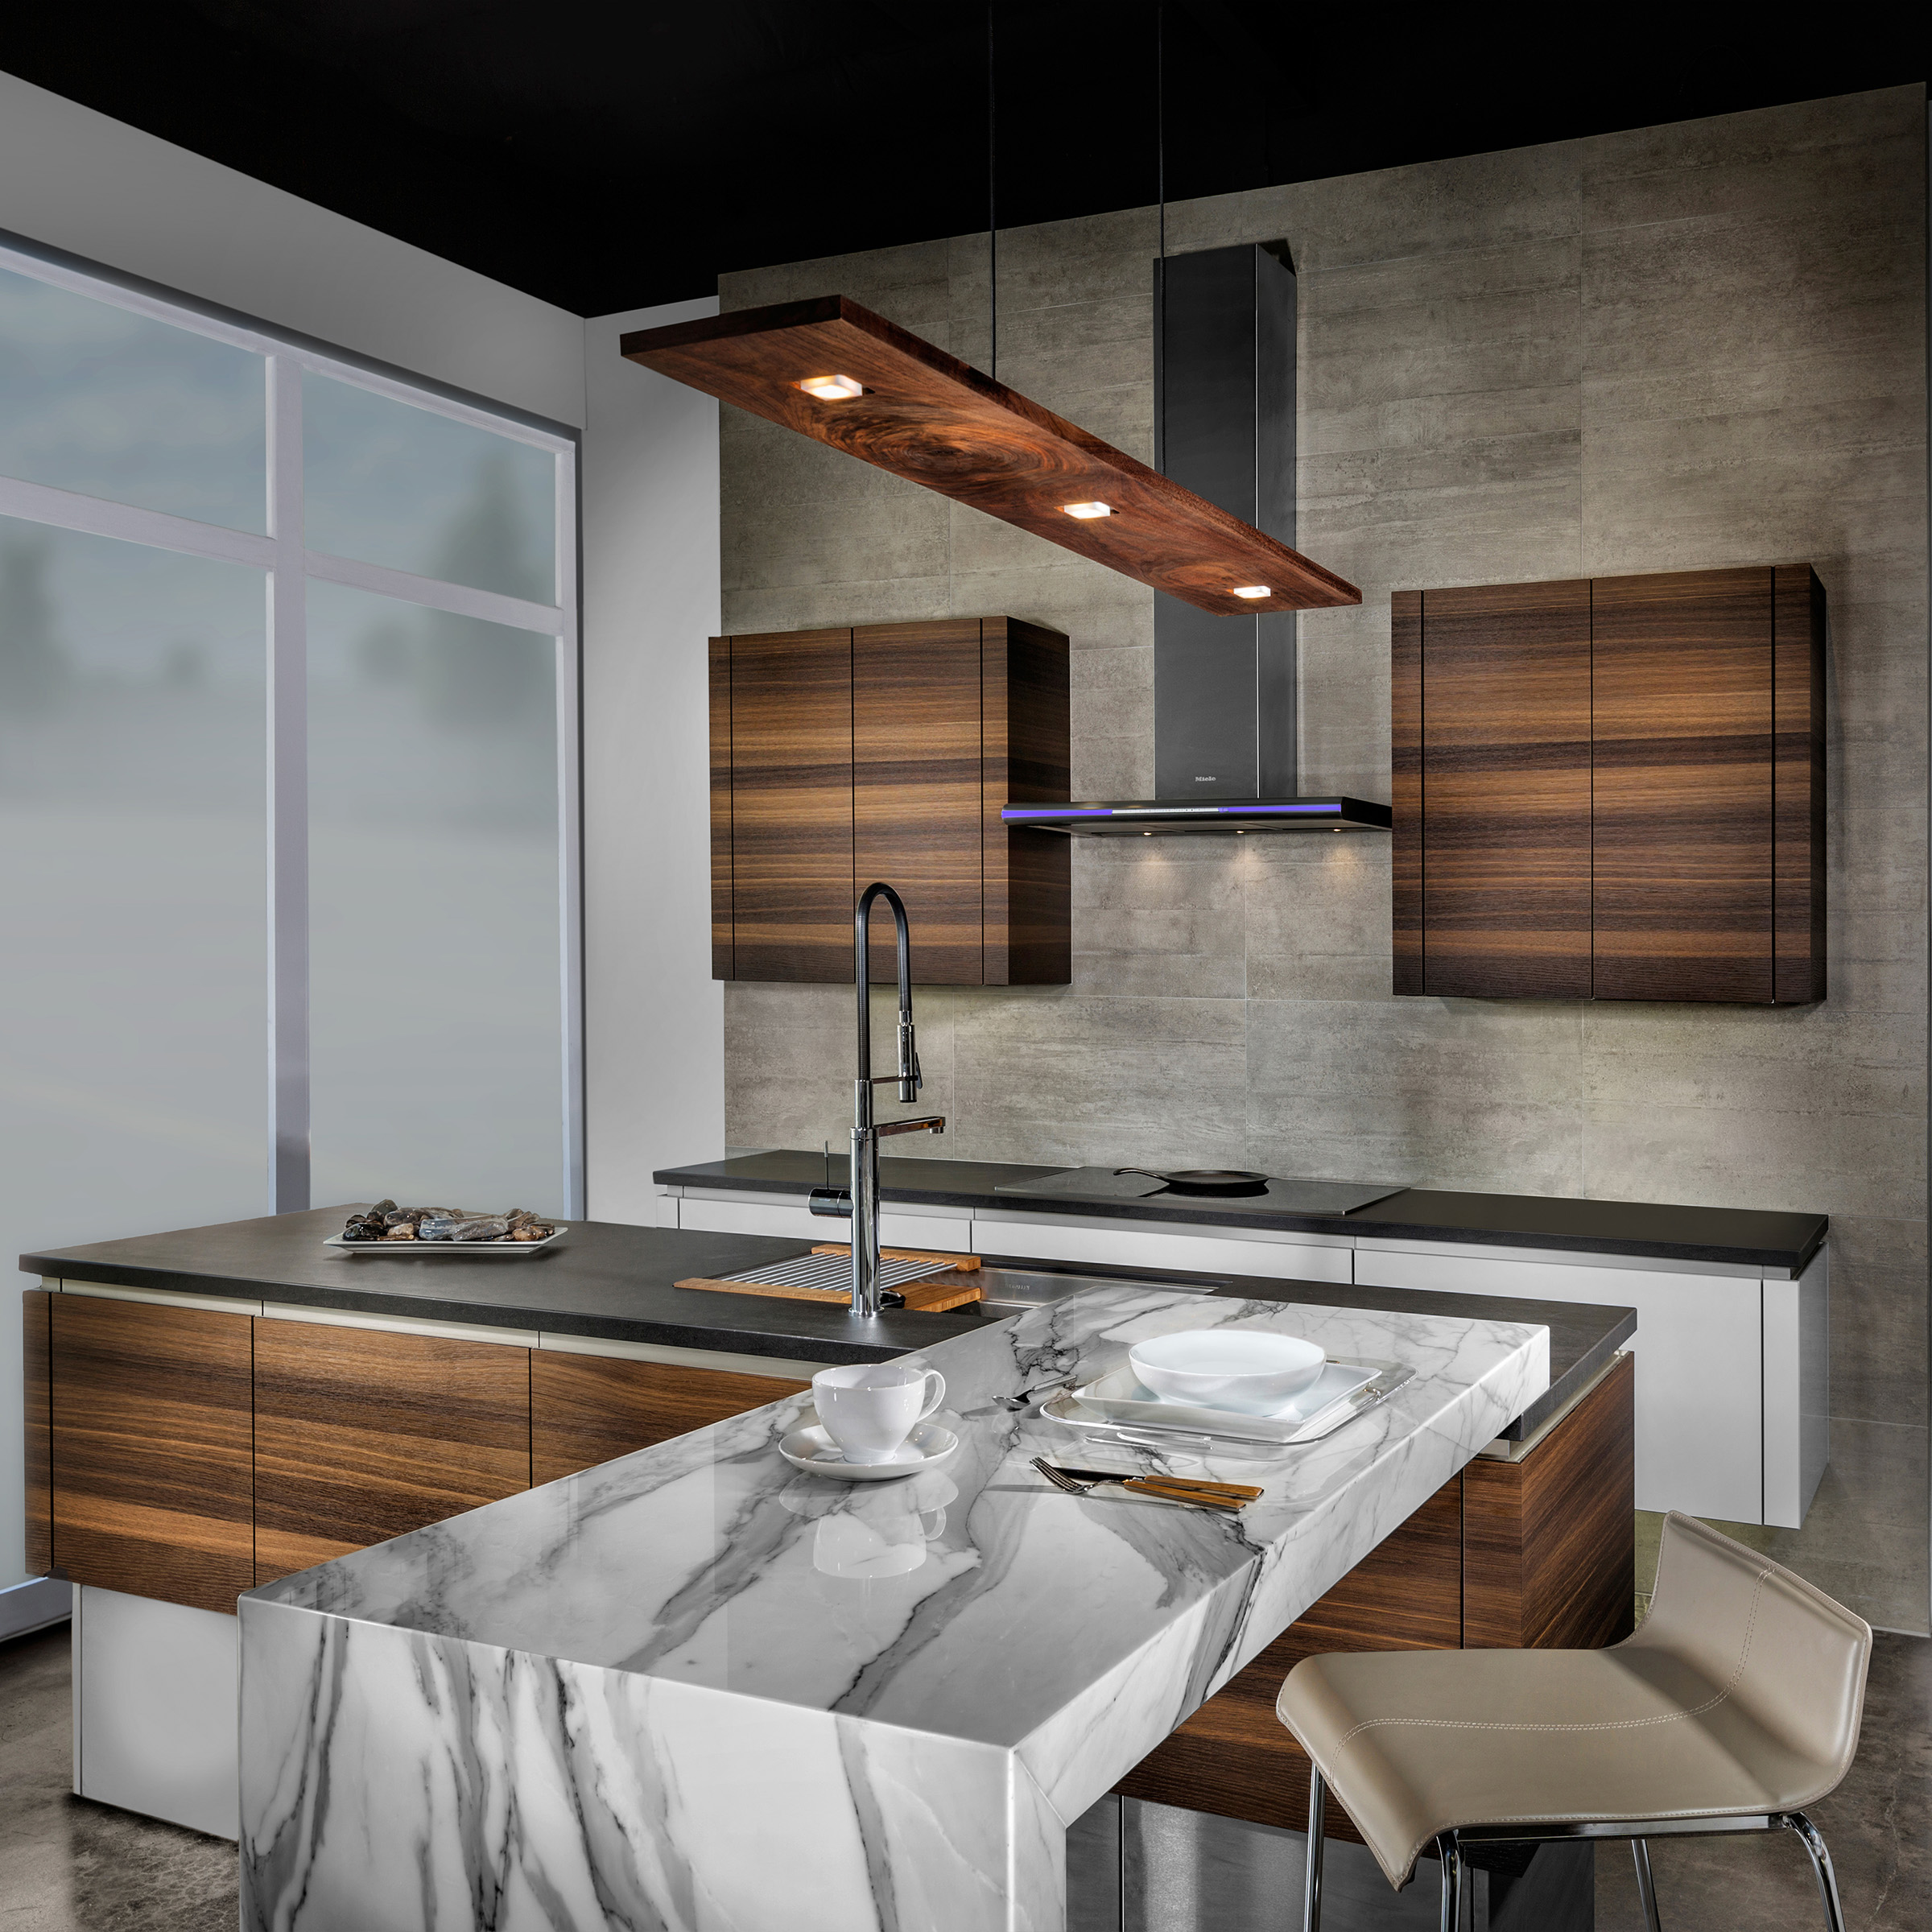 Laguna Beach Contemporary kitchen showroom